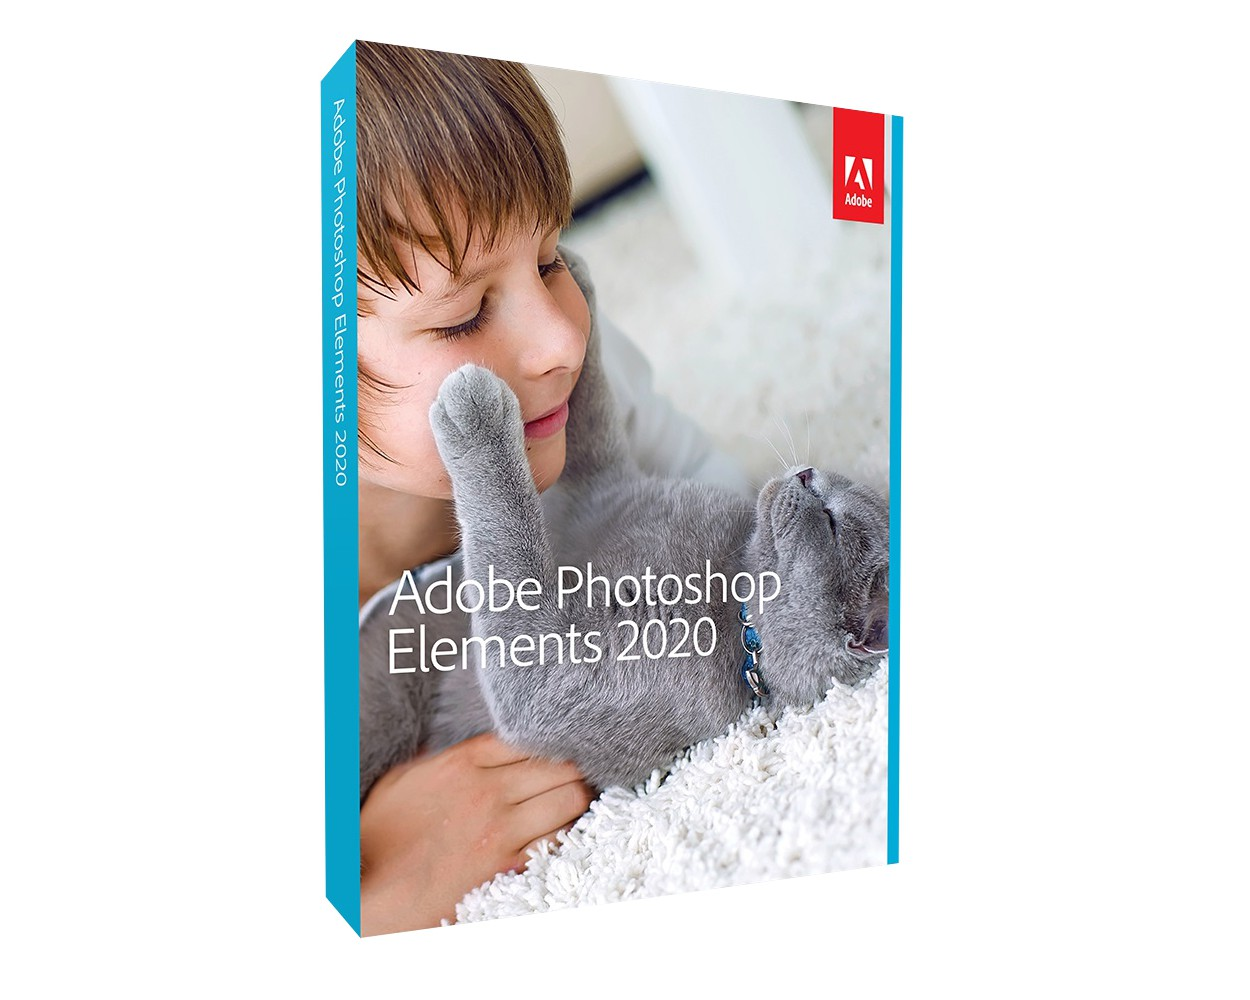 Adobe Photoshop Elements 2020 - English - Mac